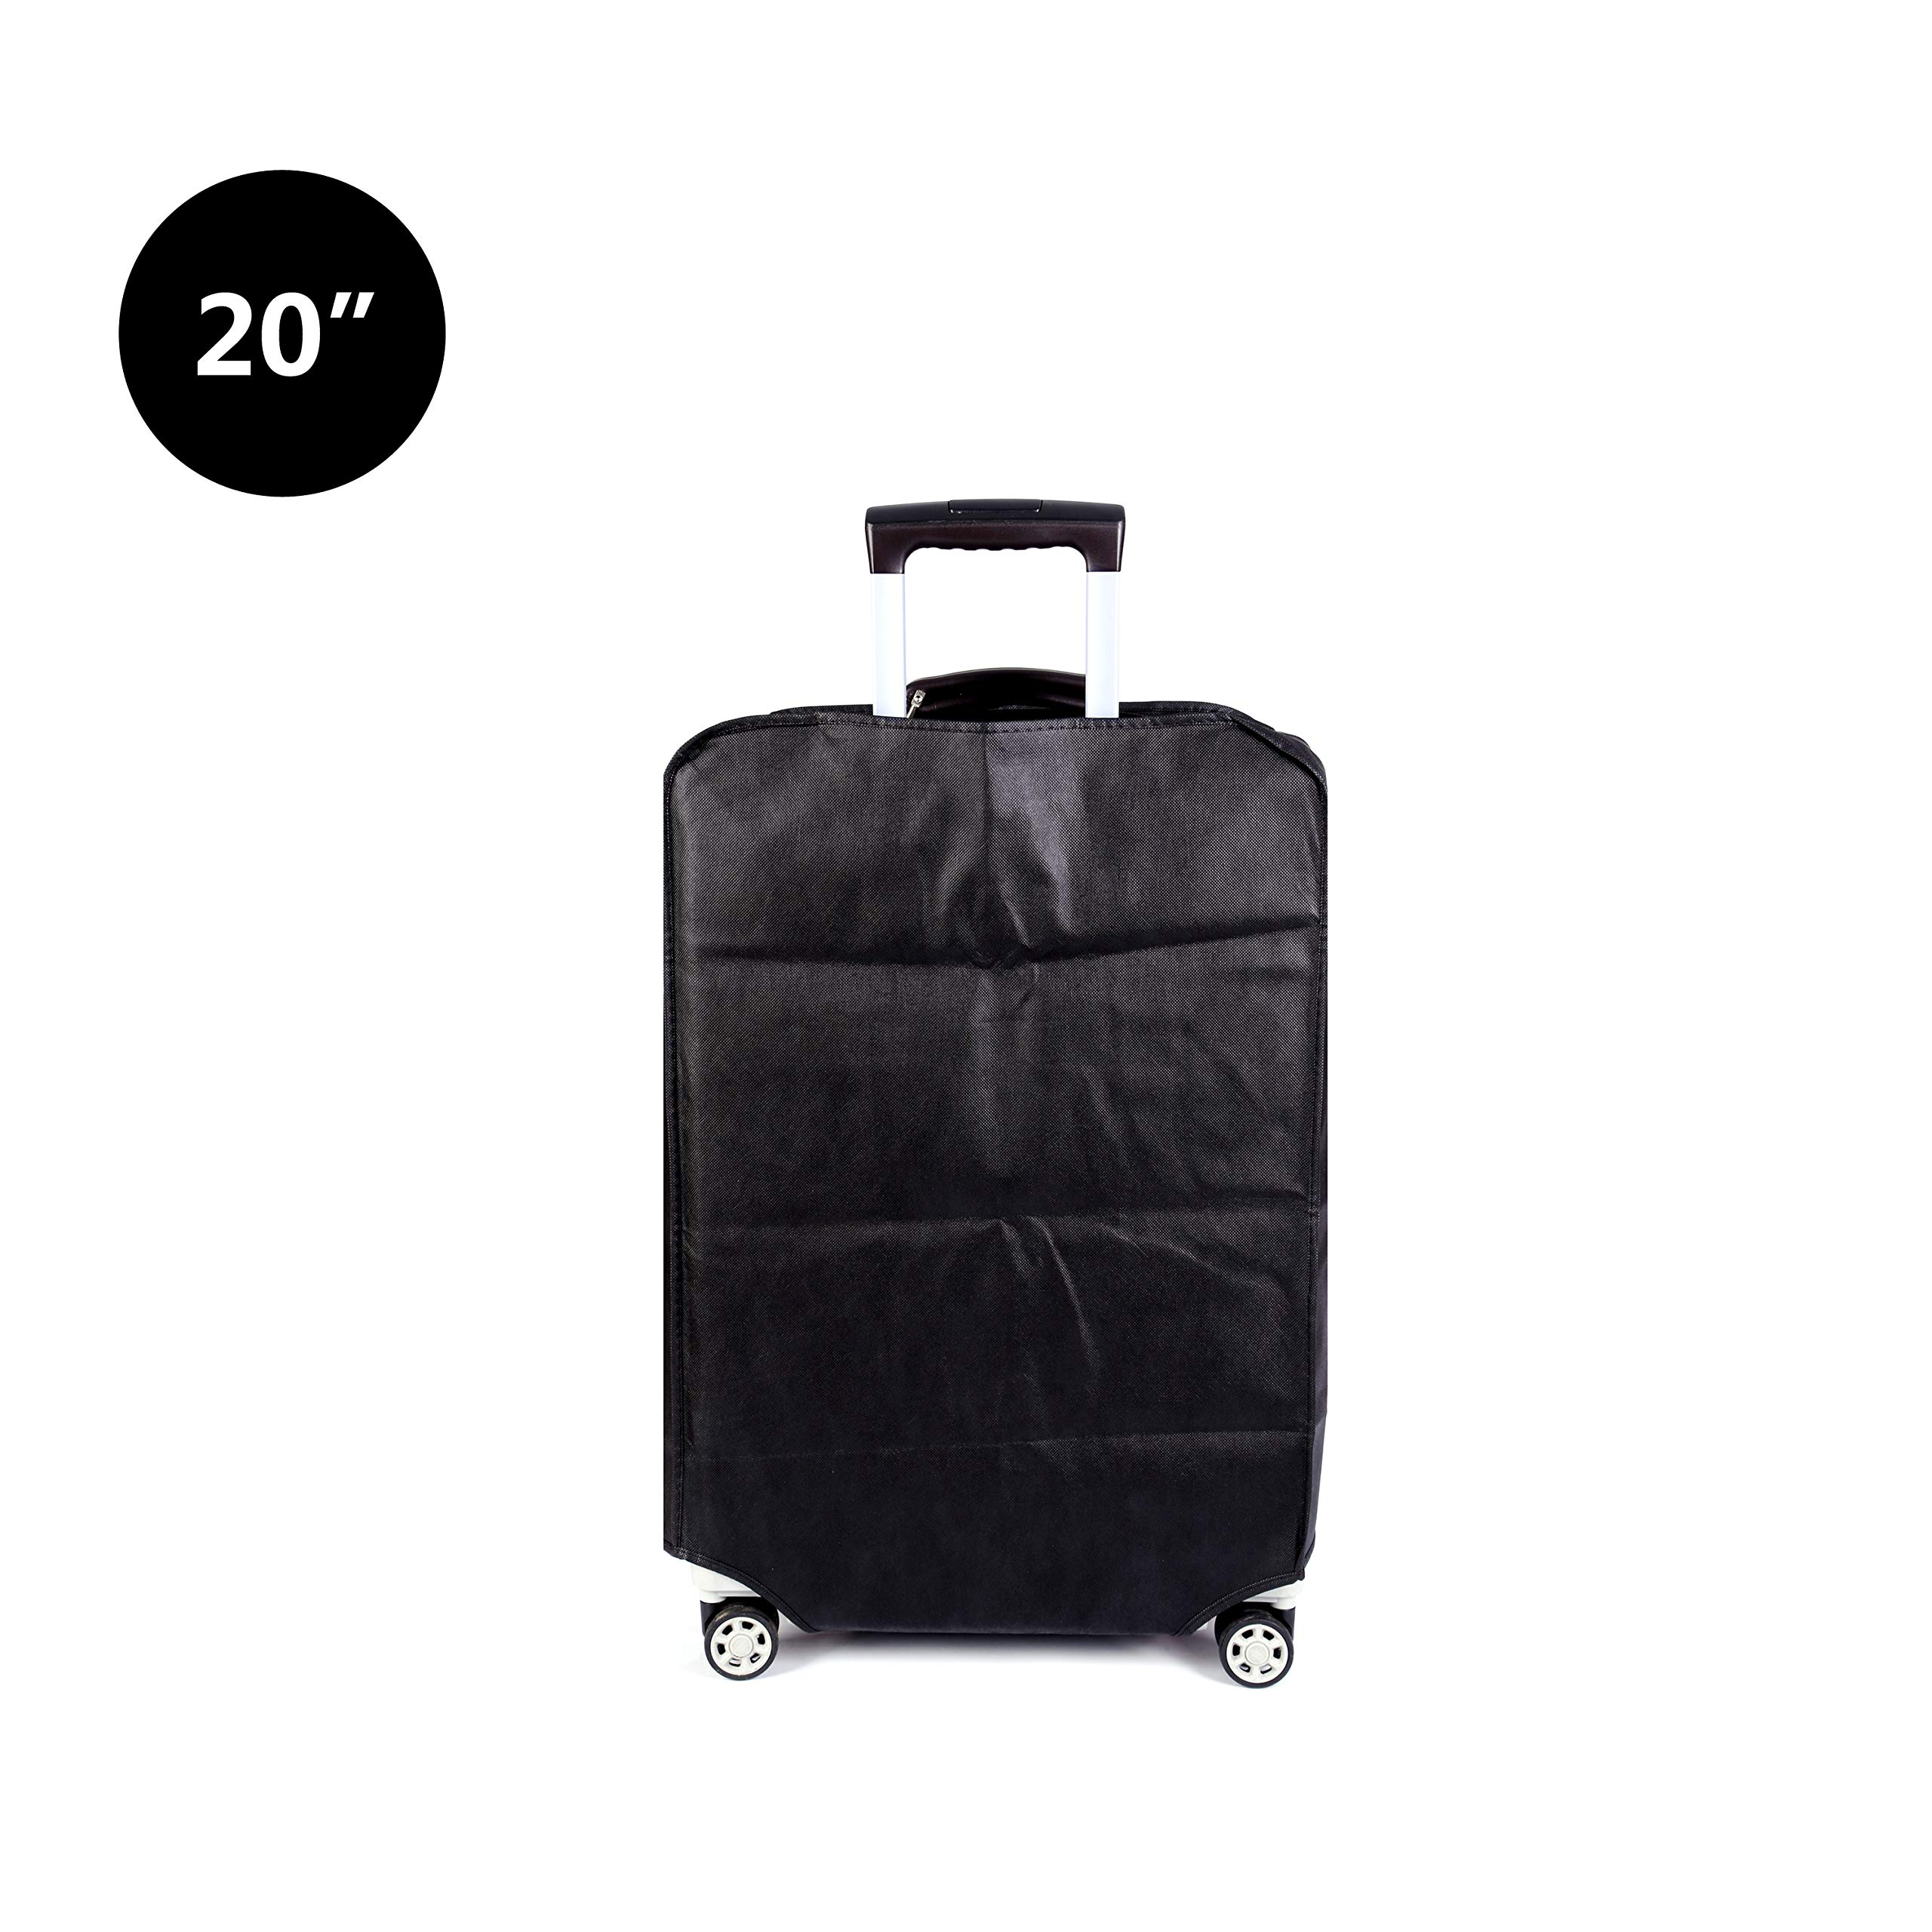 Travel Luggage Cover Luggage Protector Suitcase Cover Dust Cover,3 Colors,Fits 20 Inch,Black by CXGIAE (Image #3)